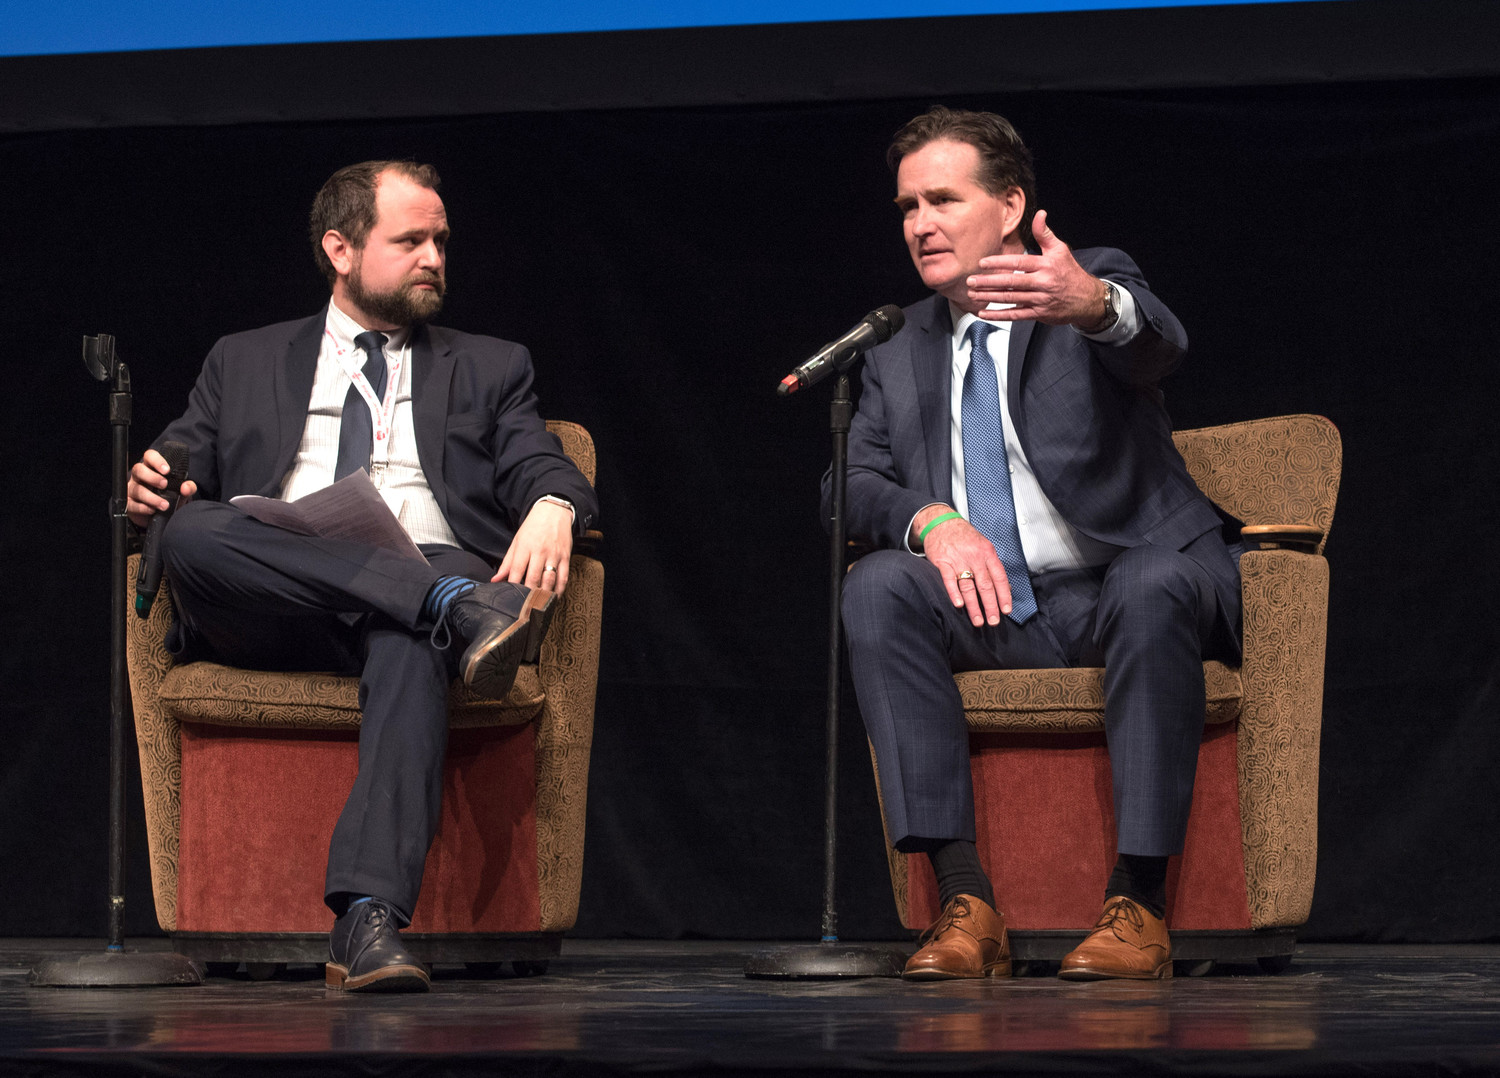 Maury Litwack (left), executive director of the Teach Advocacy Network, and state Senate Majority Leader John J. Flanagan participate in a panel discussion during last week's Teach NYS event in Albany.